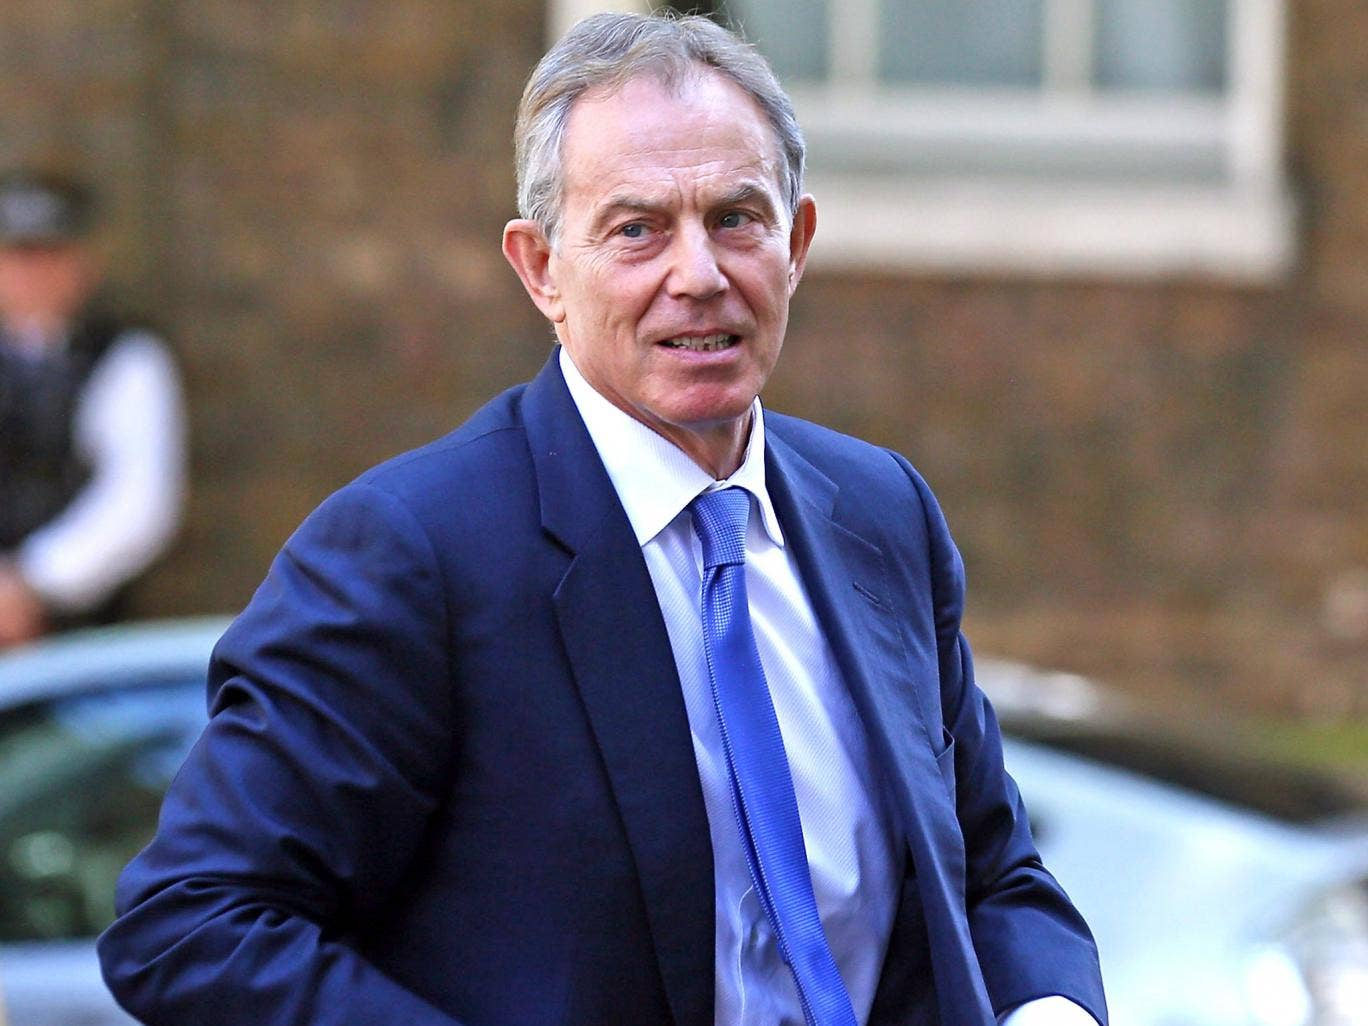 Tony Blair on going to war: 'The consequences are difficult and the choice is ugly'